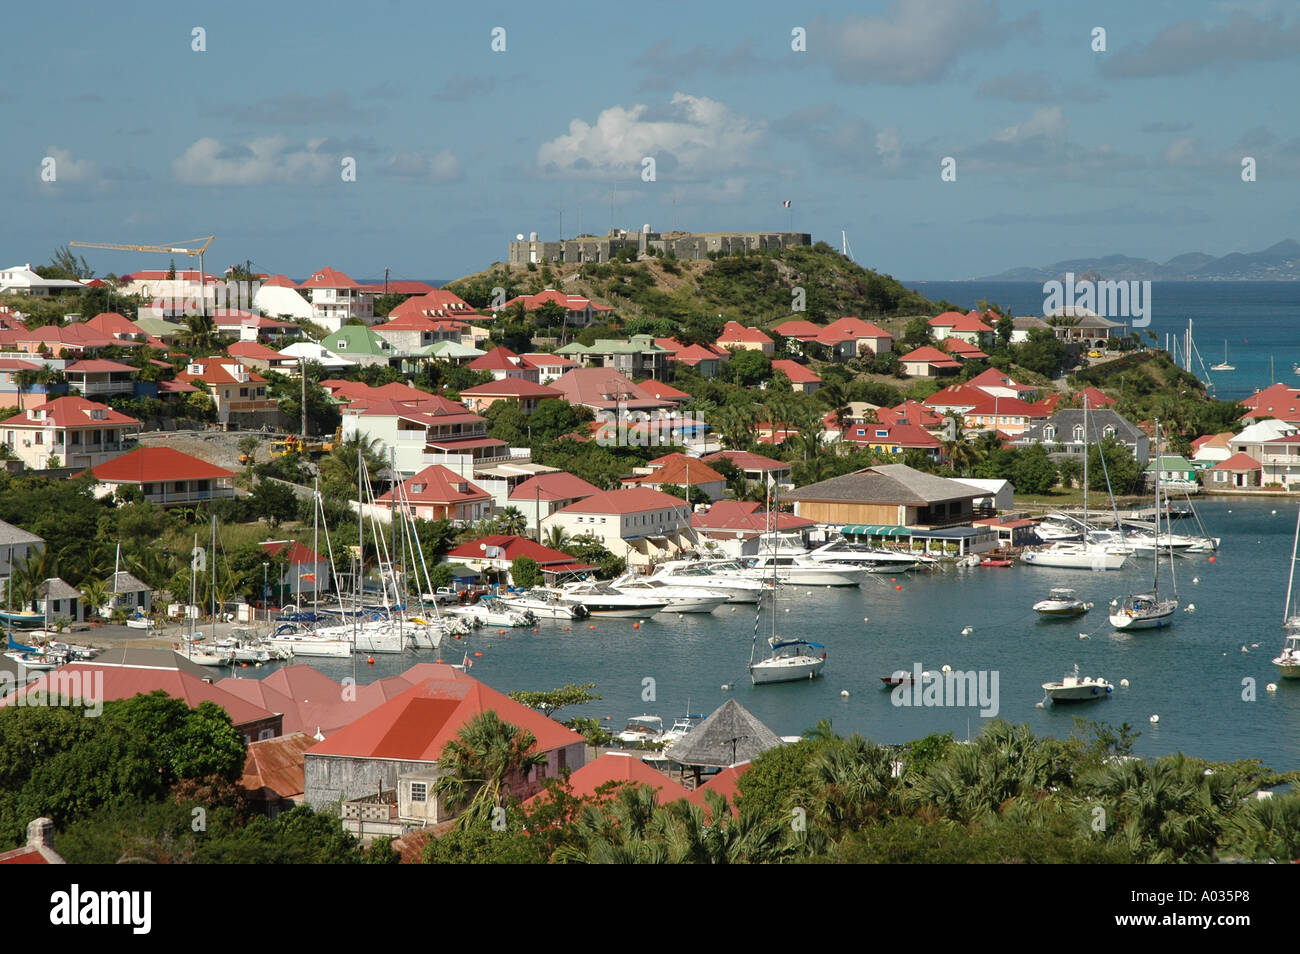 St Barths St Barts Gustavia Harbor fort overlooking the city - Stock Image